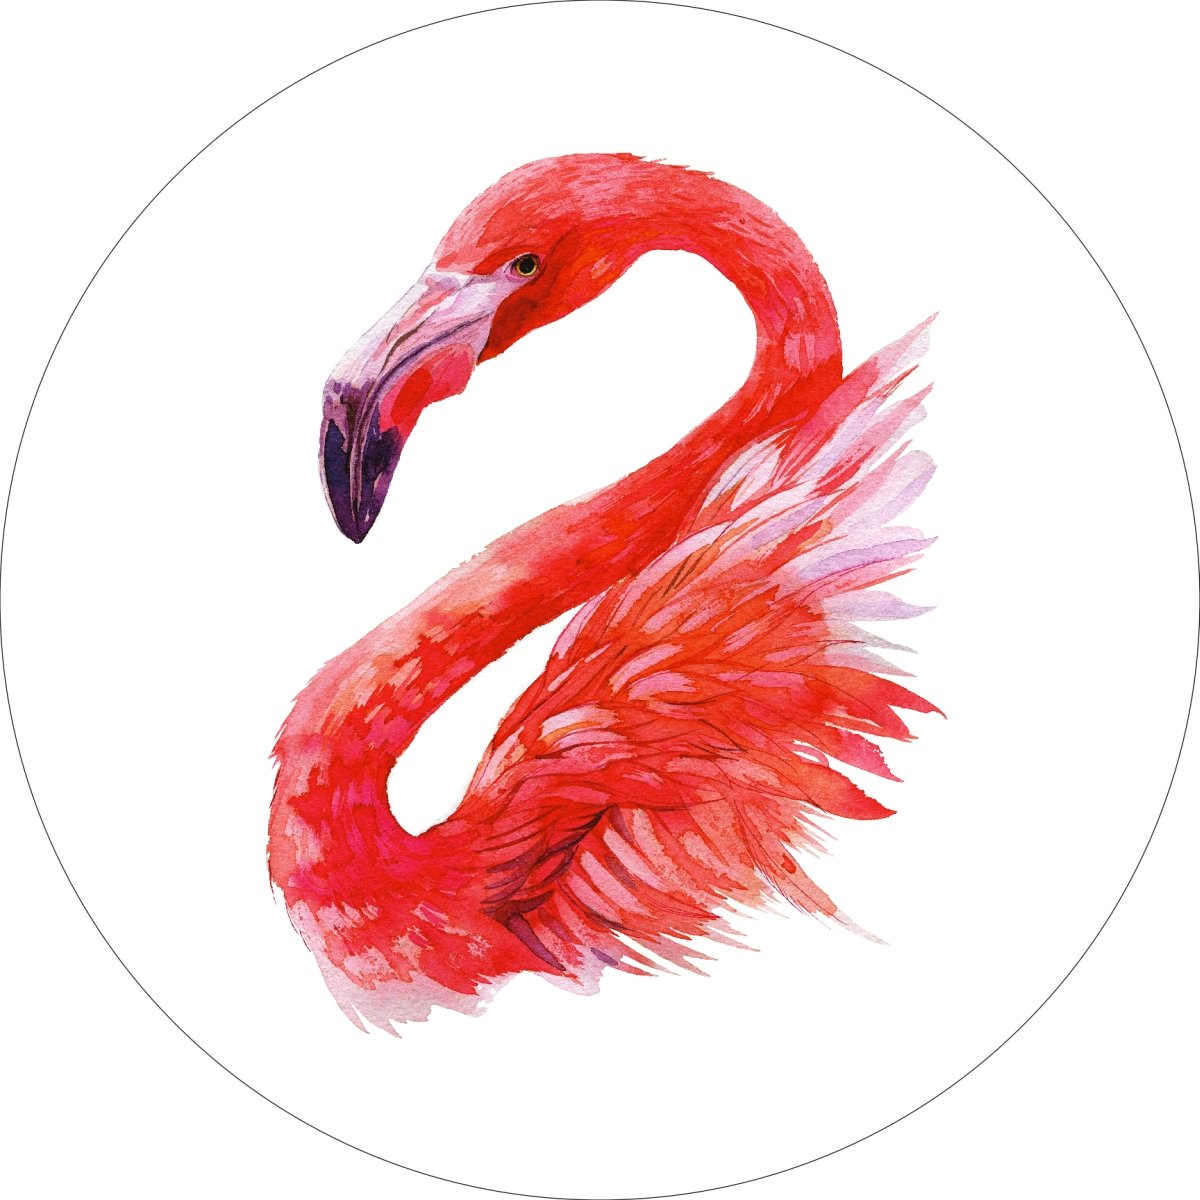 Flamingo Home Wall Shelf Decor Animal Decorations Watercolor Round Sign - 18 Inch, Metal